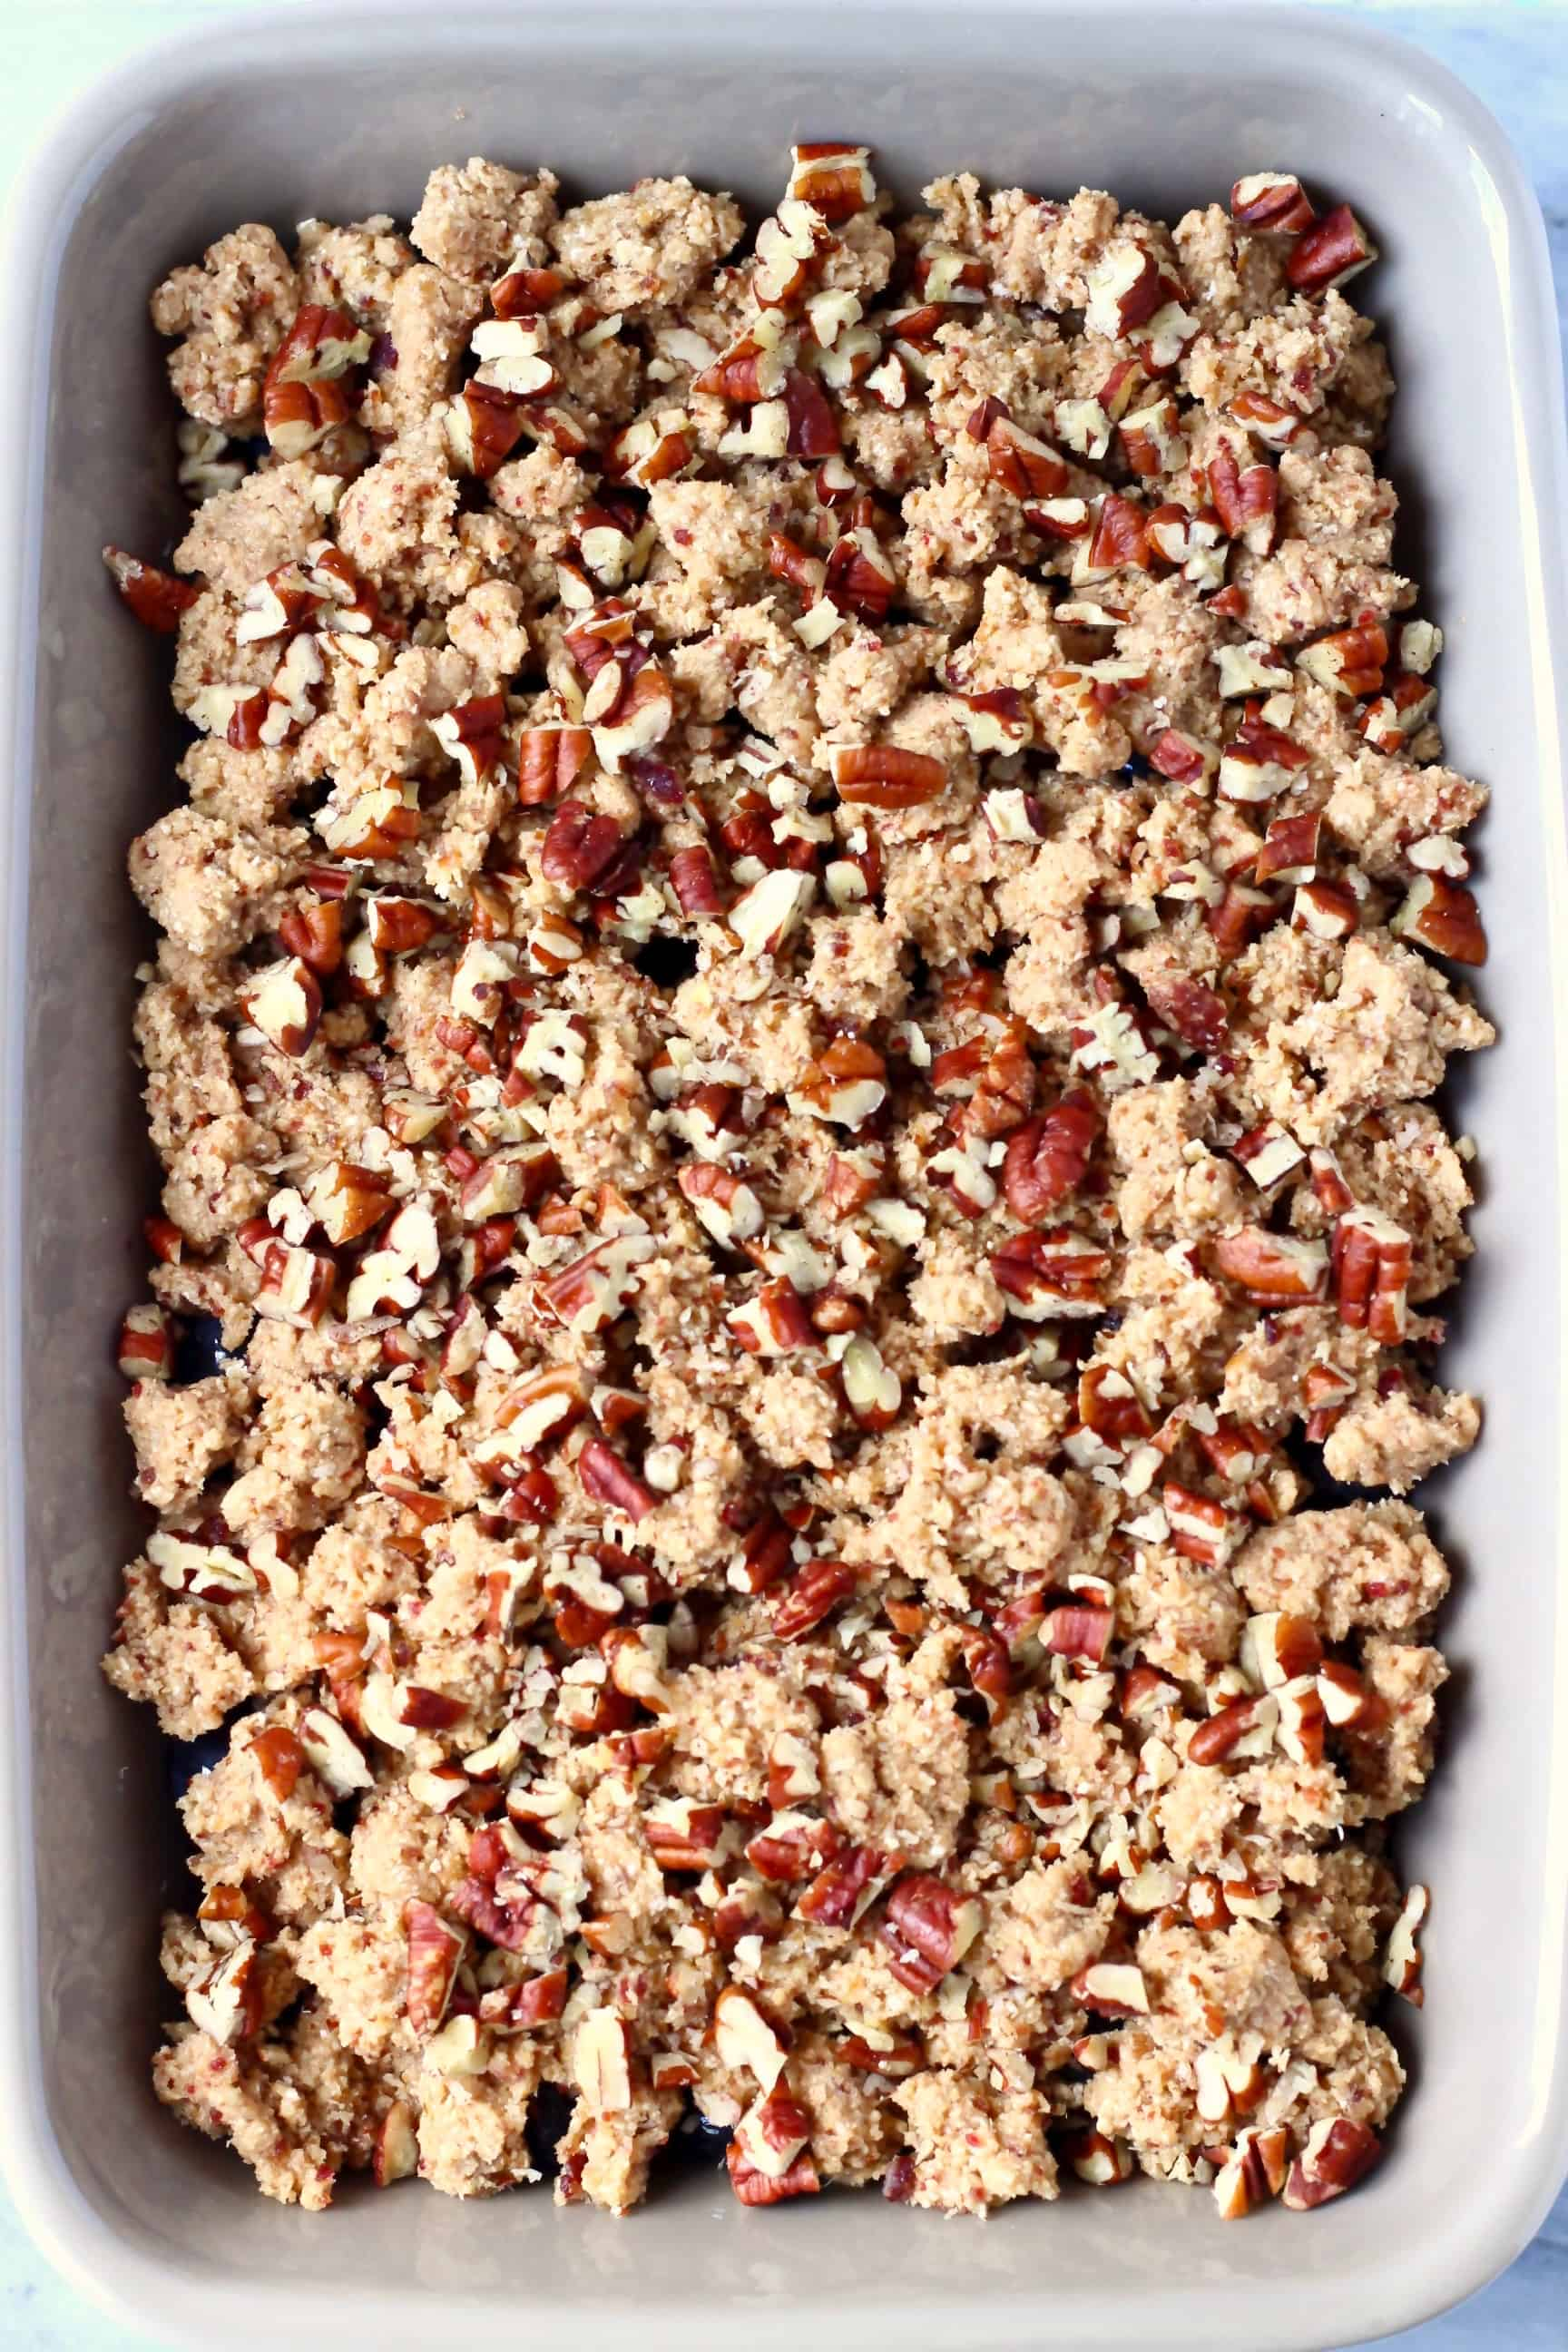 Raw blueberry crisp topped with pecan nuts in a grey baking dish